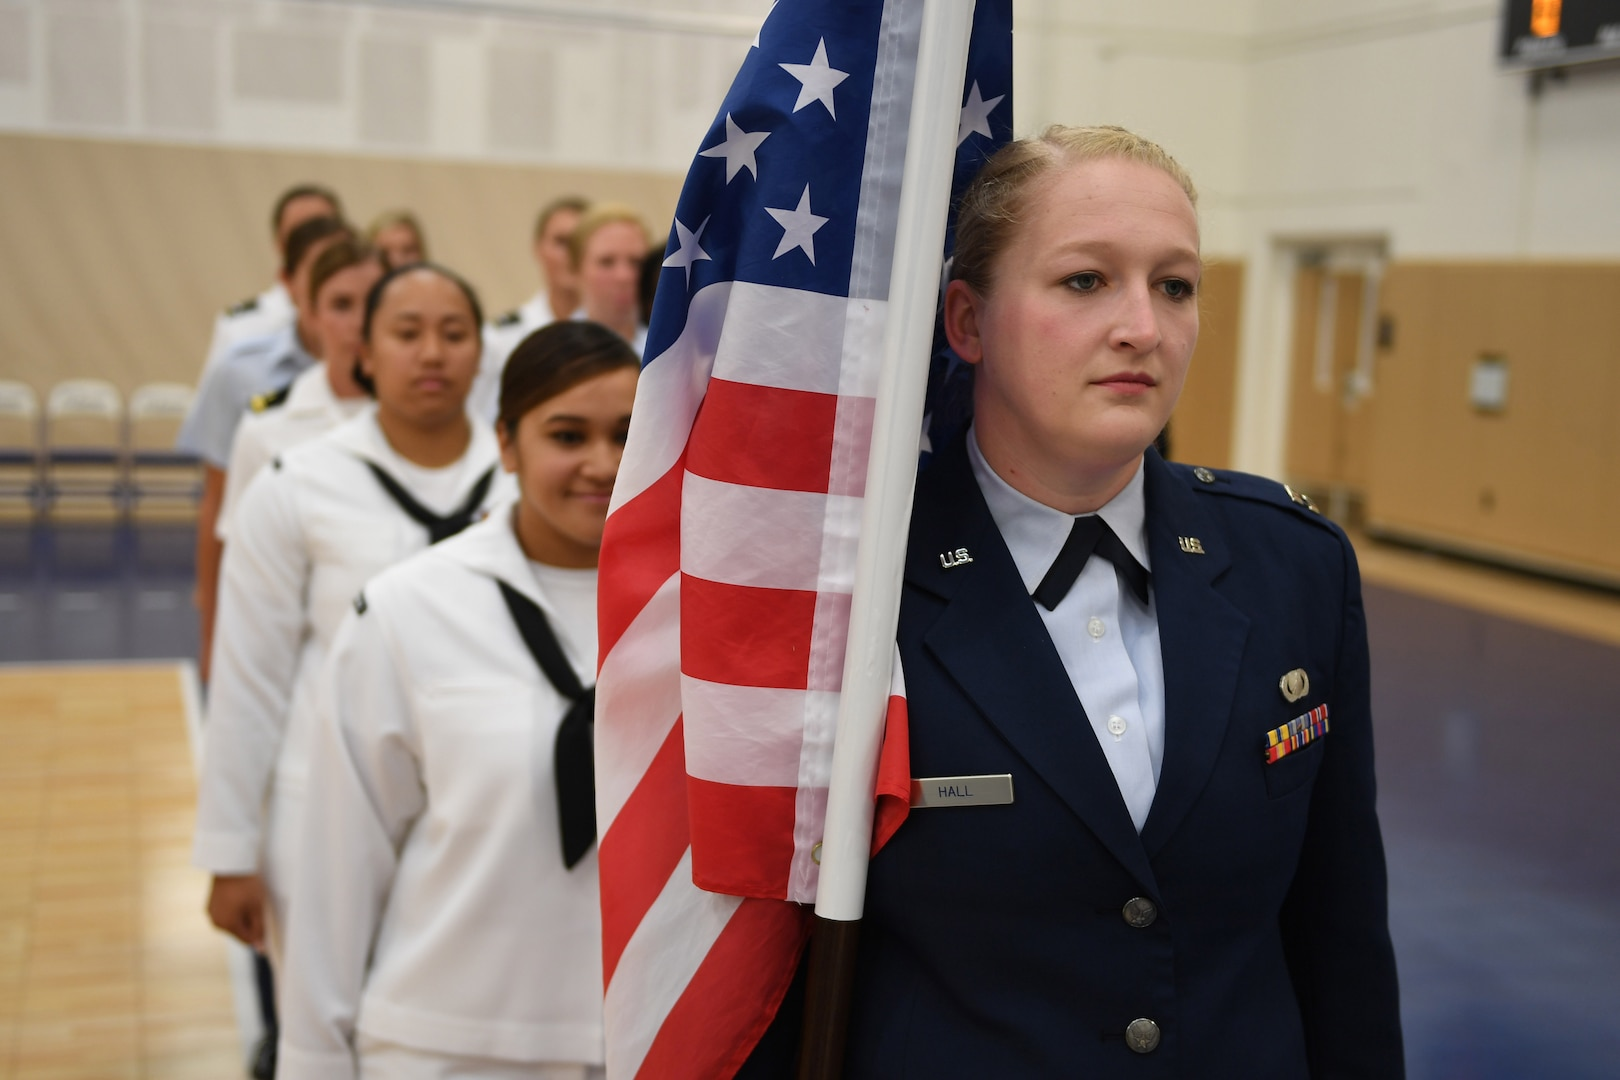 170603-N-UK306-045 JACKSONVILLE, Fla. (June 3, 2017)  Compeititors take part in the opening ceremony of the 18th Conseil International du Sport Militaire (CISM) World Military Women's Volleyball Championship at Naval Station Mayport.  Teams from the United States, Canada, China, Germany and The Netherlands will compete June 4-9, while promoting peace activities and solidarity among athletes. (U.S. Navy photo by Mass Communication Specialist 2nd Class Timothy Schumaker/Released)